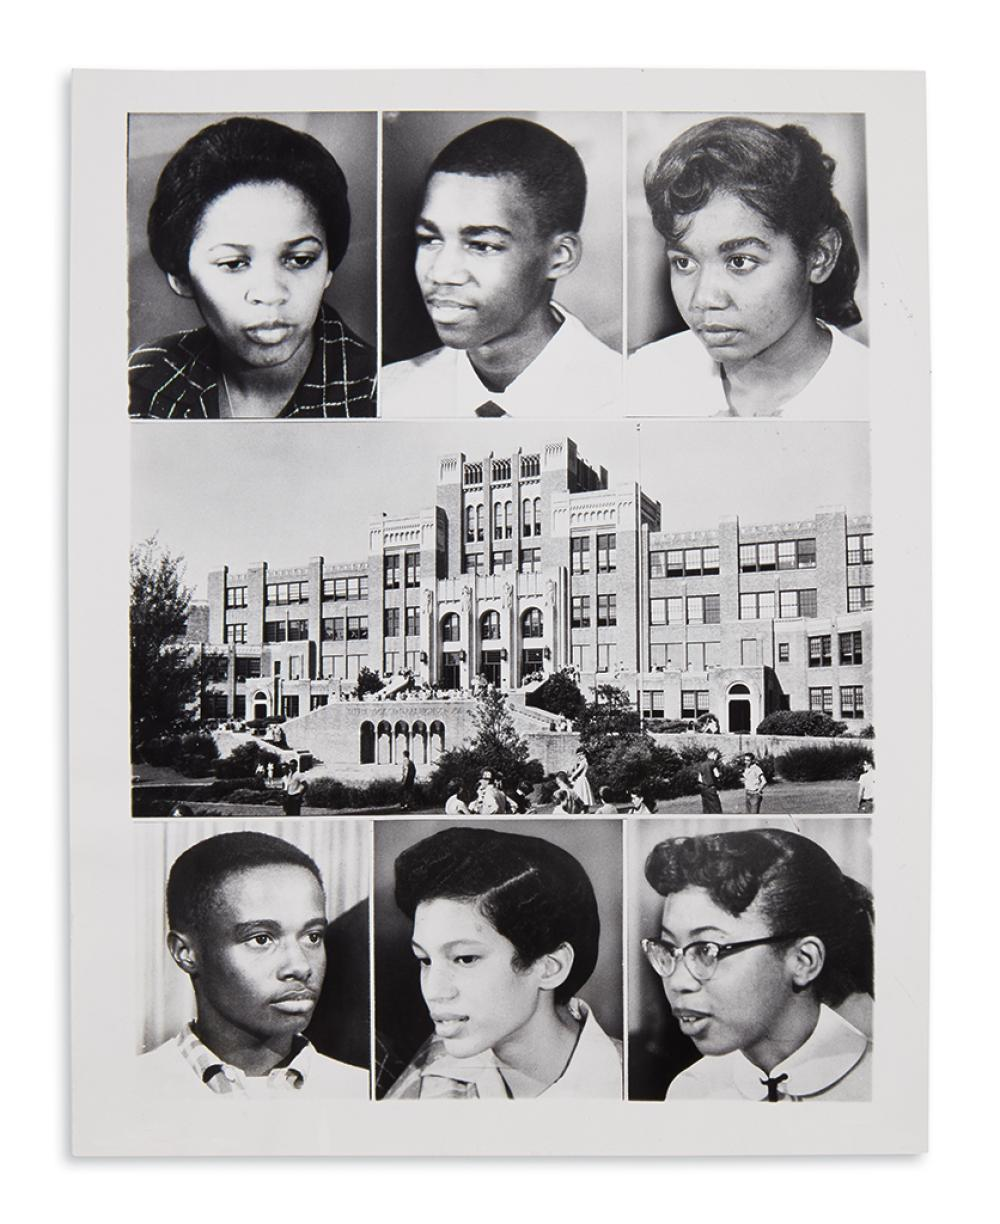 (CIVIL RIGHTS.) Group of 7 press photographs of the Little Rock school integration protests.